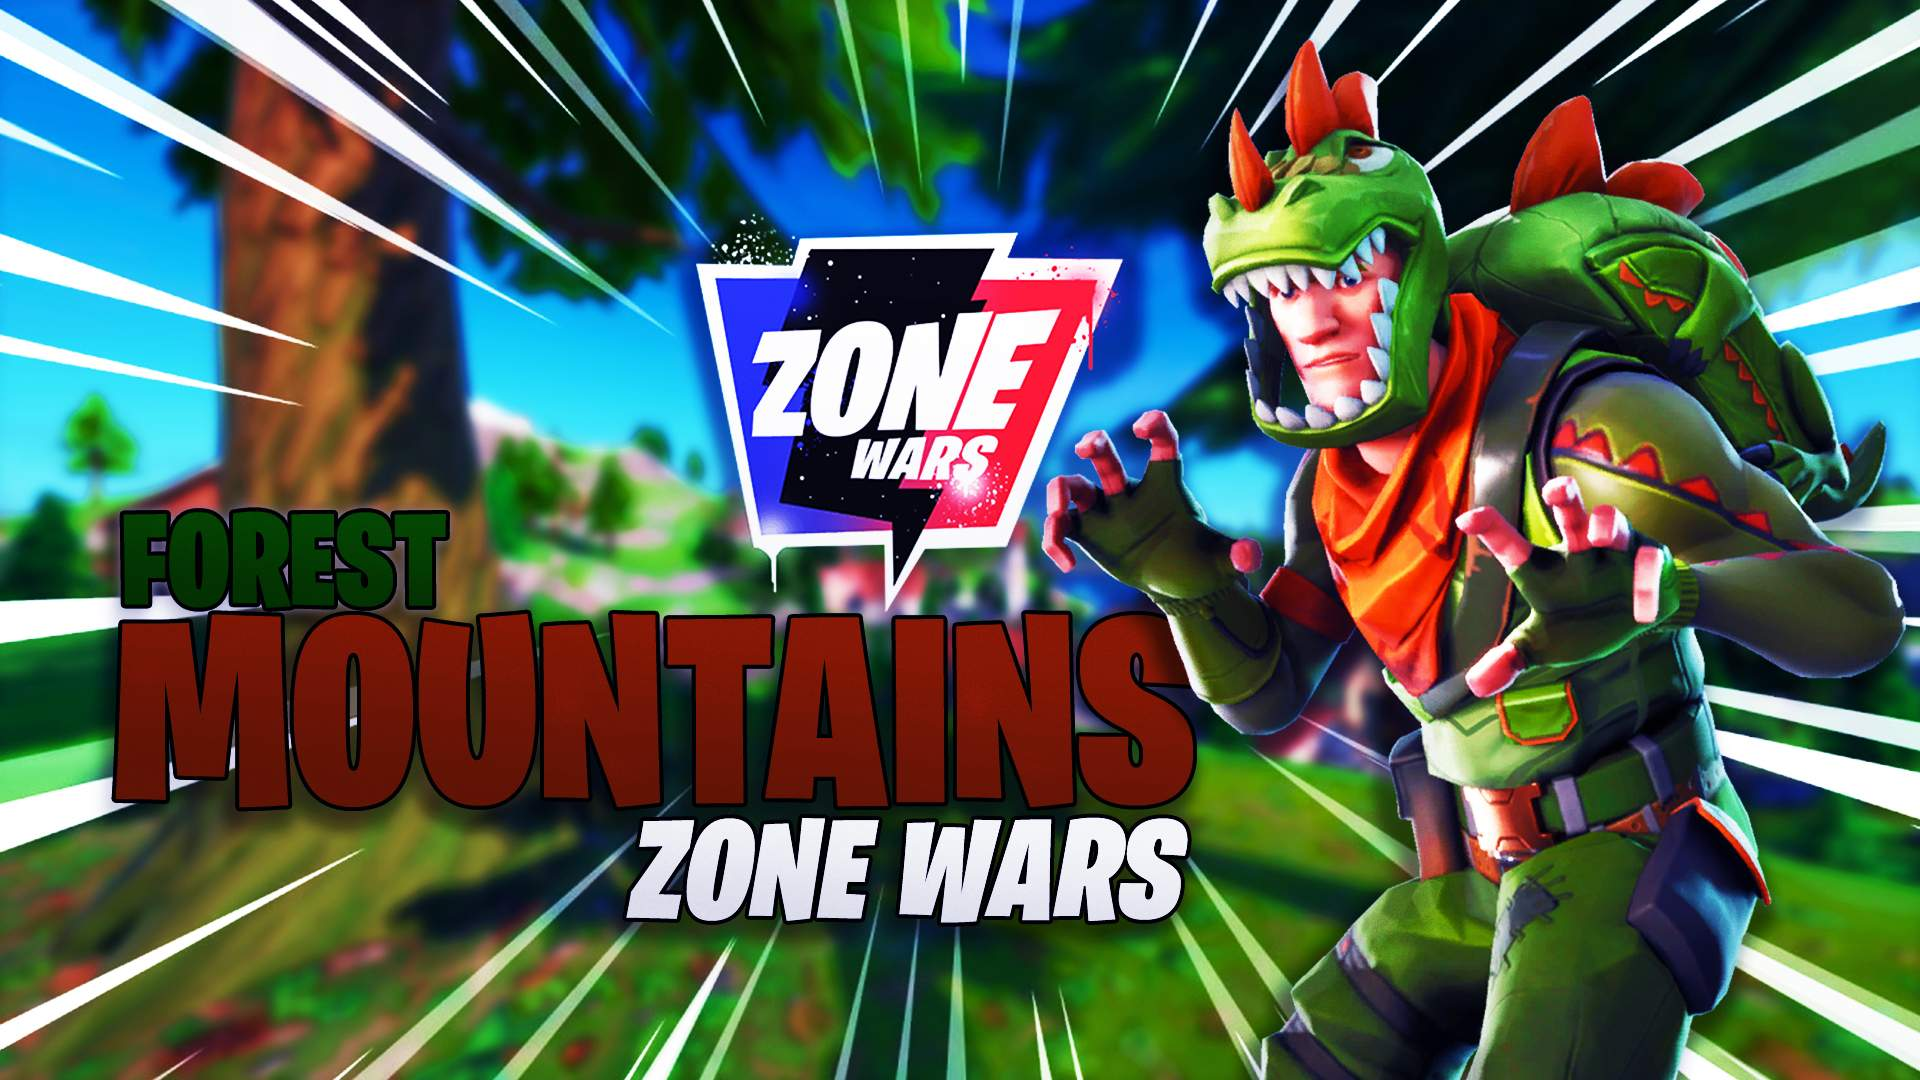 FOREST MOUNTAINS ZONE WARS - BETA